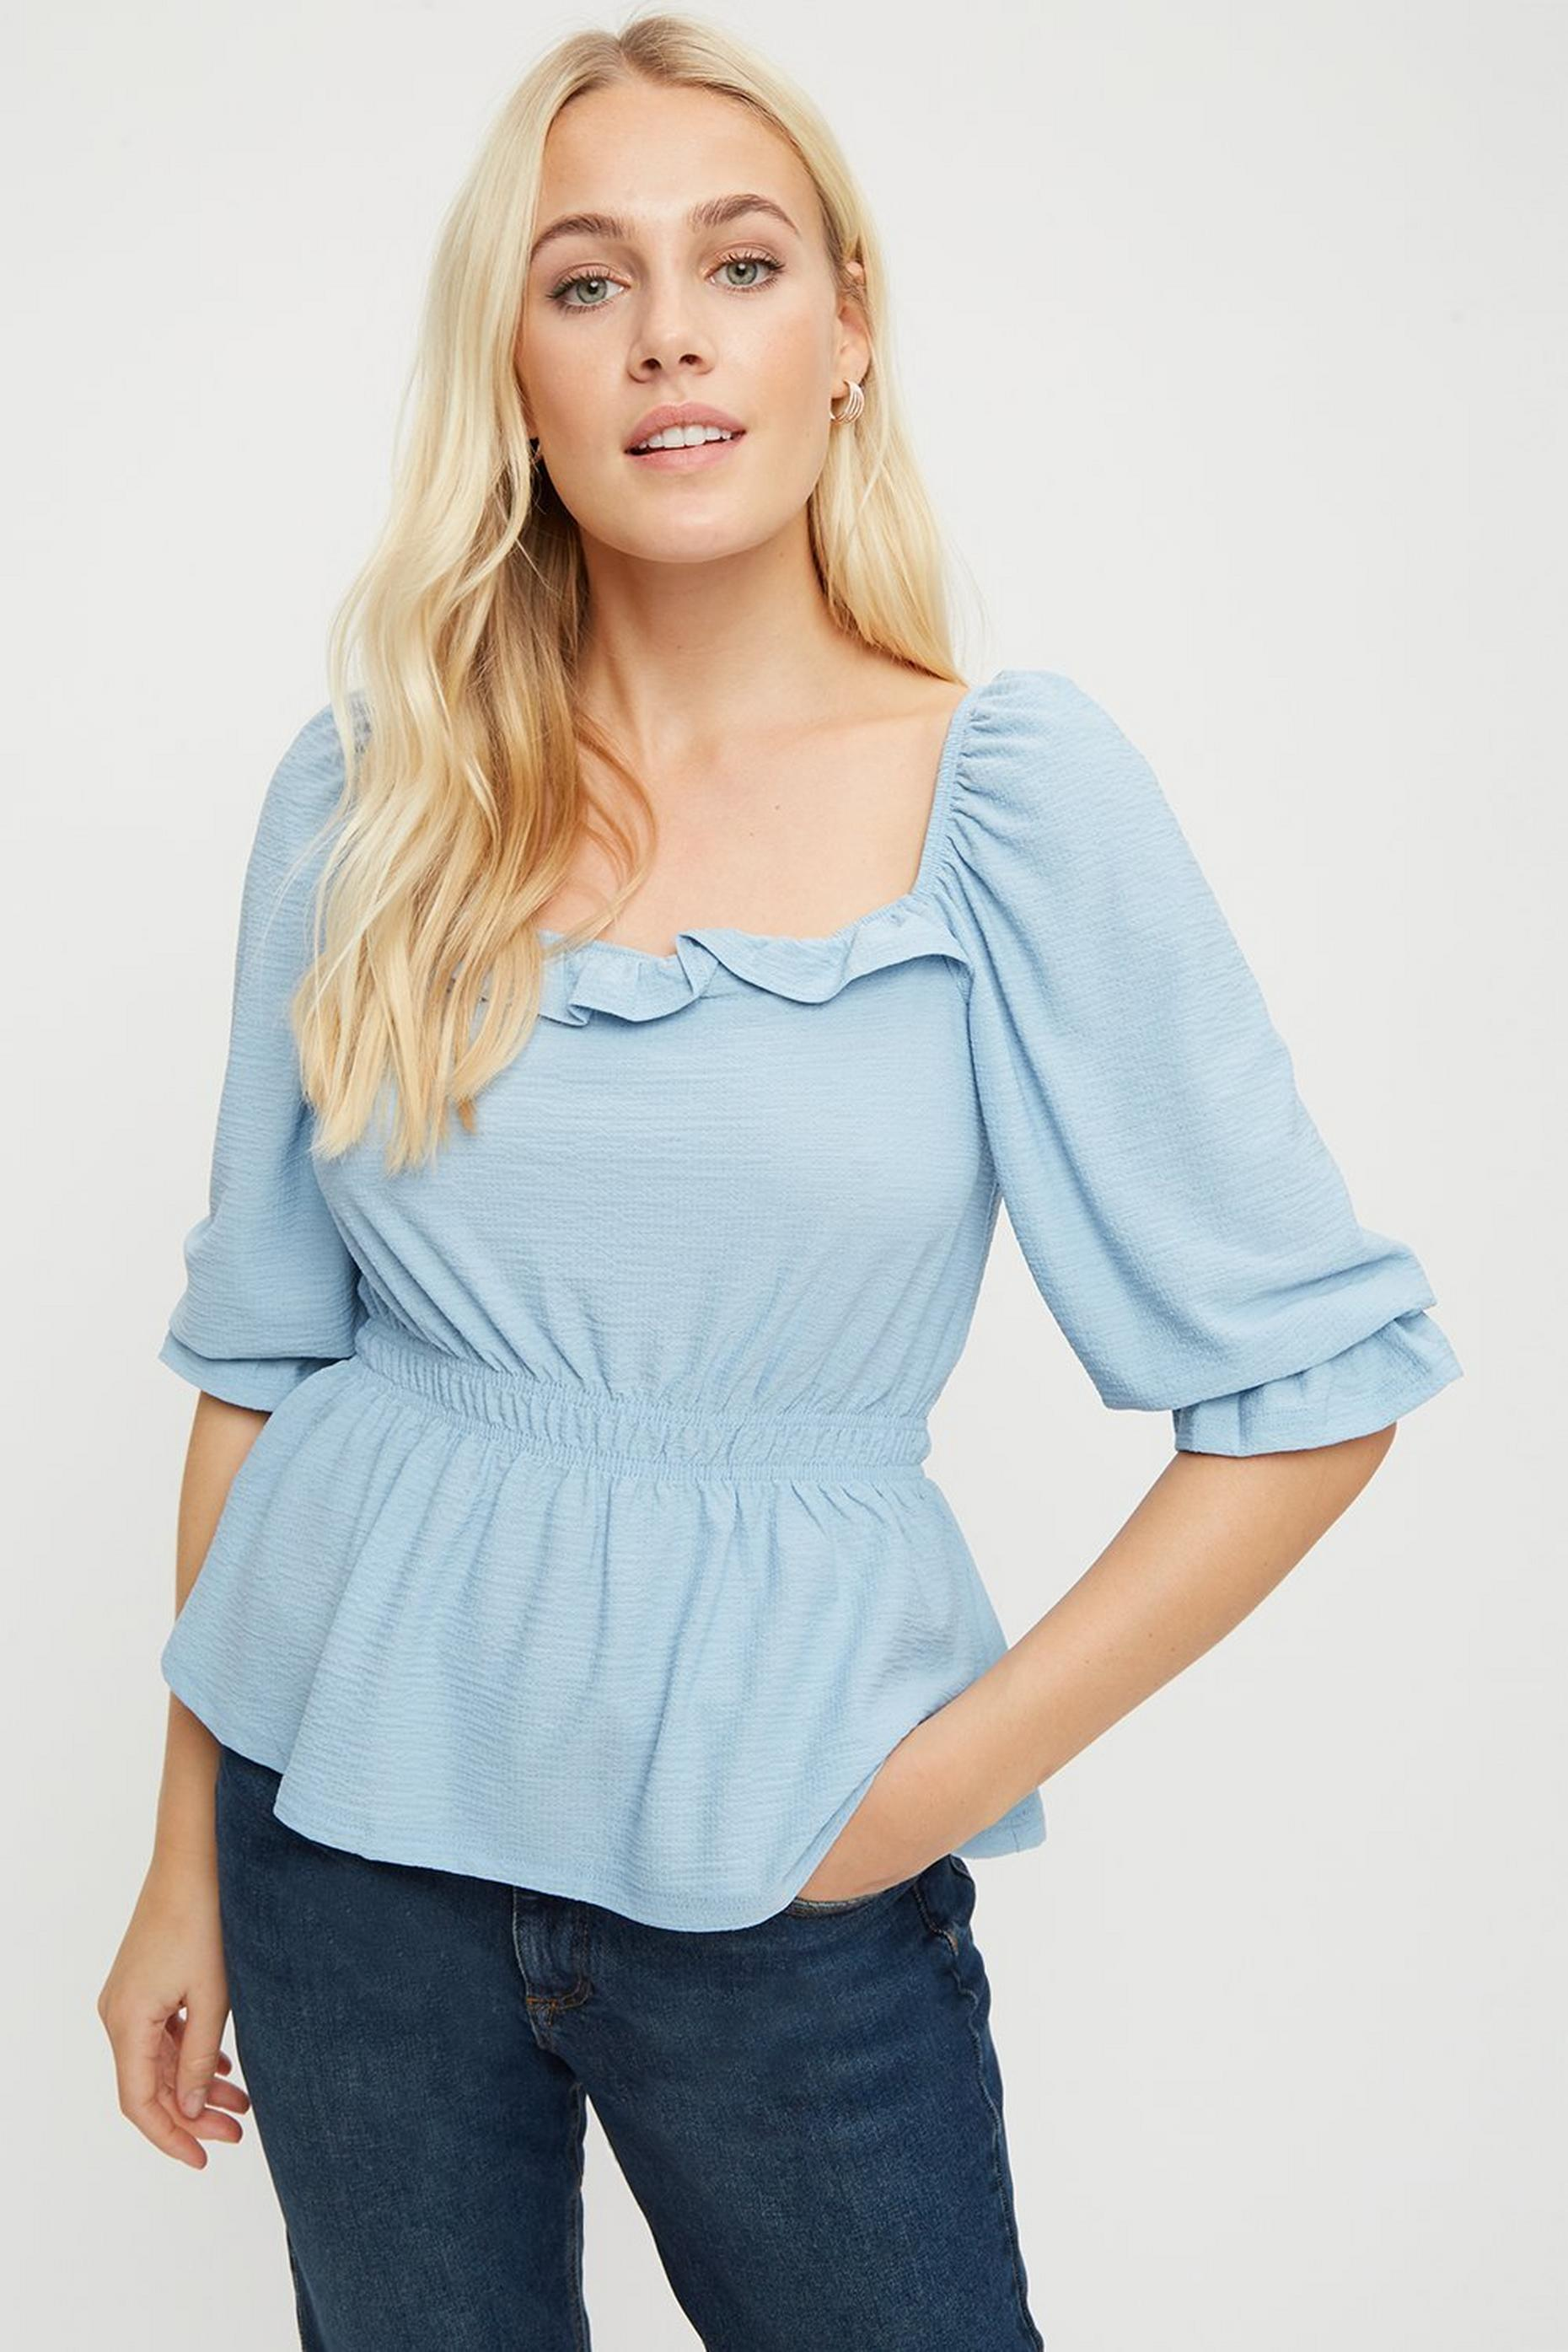 Blue Sqaure Neck Textured Top